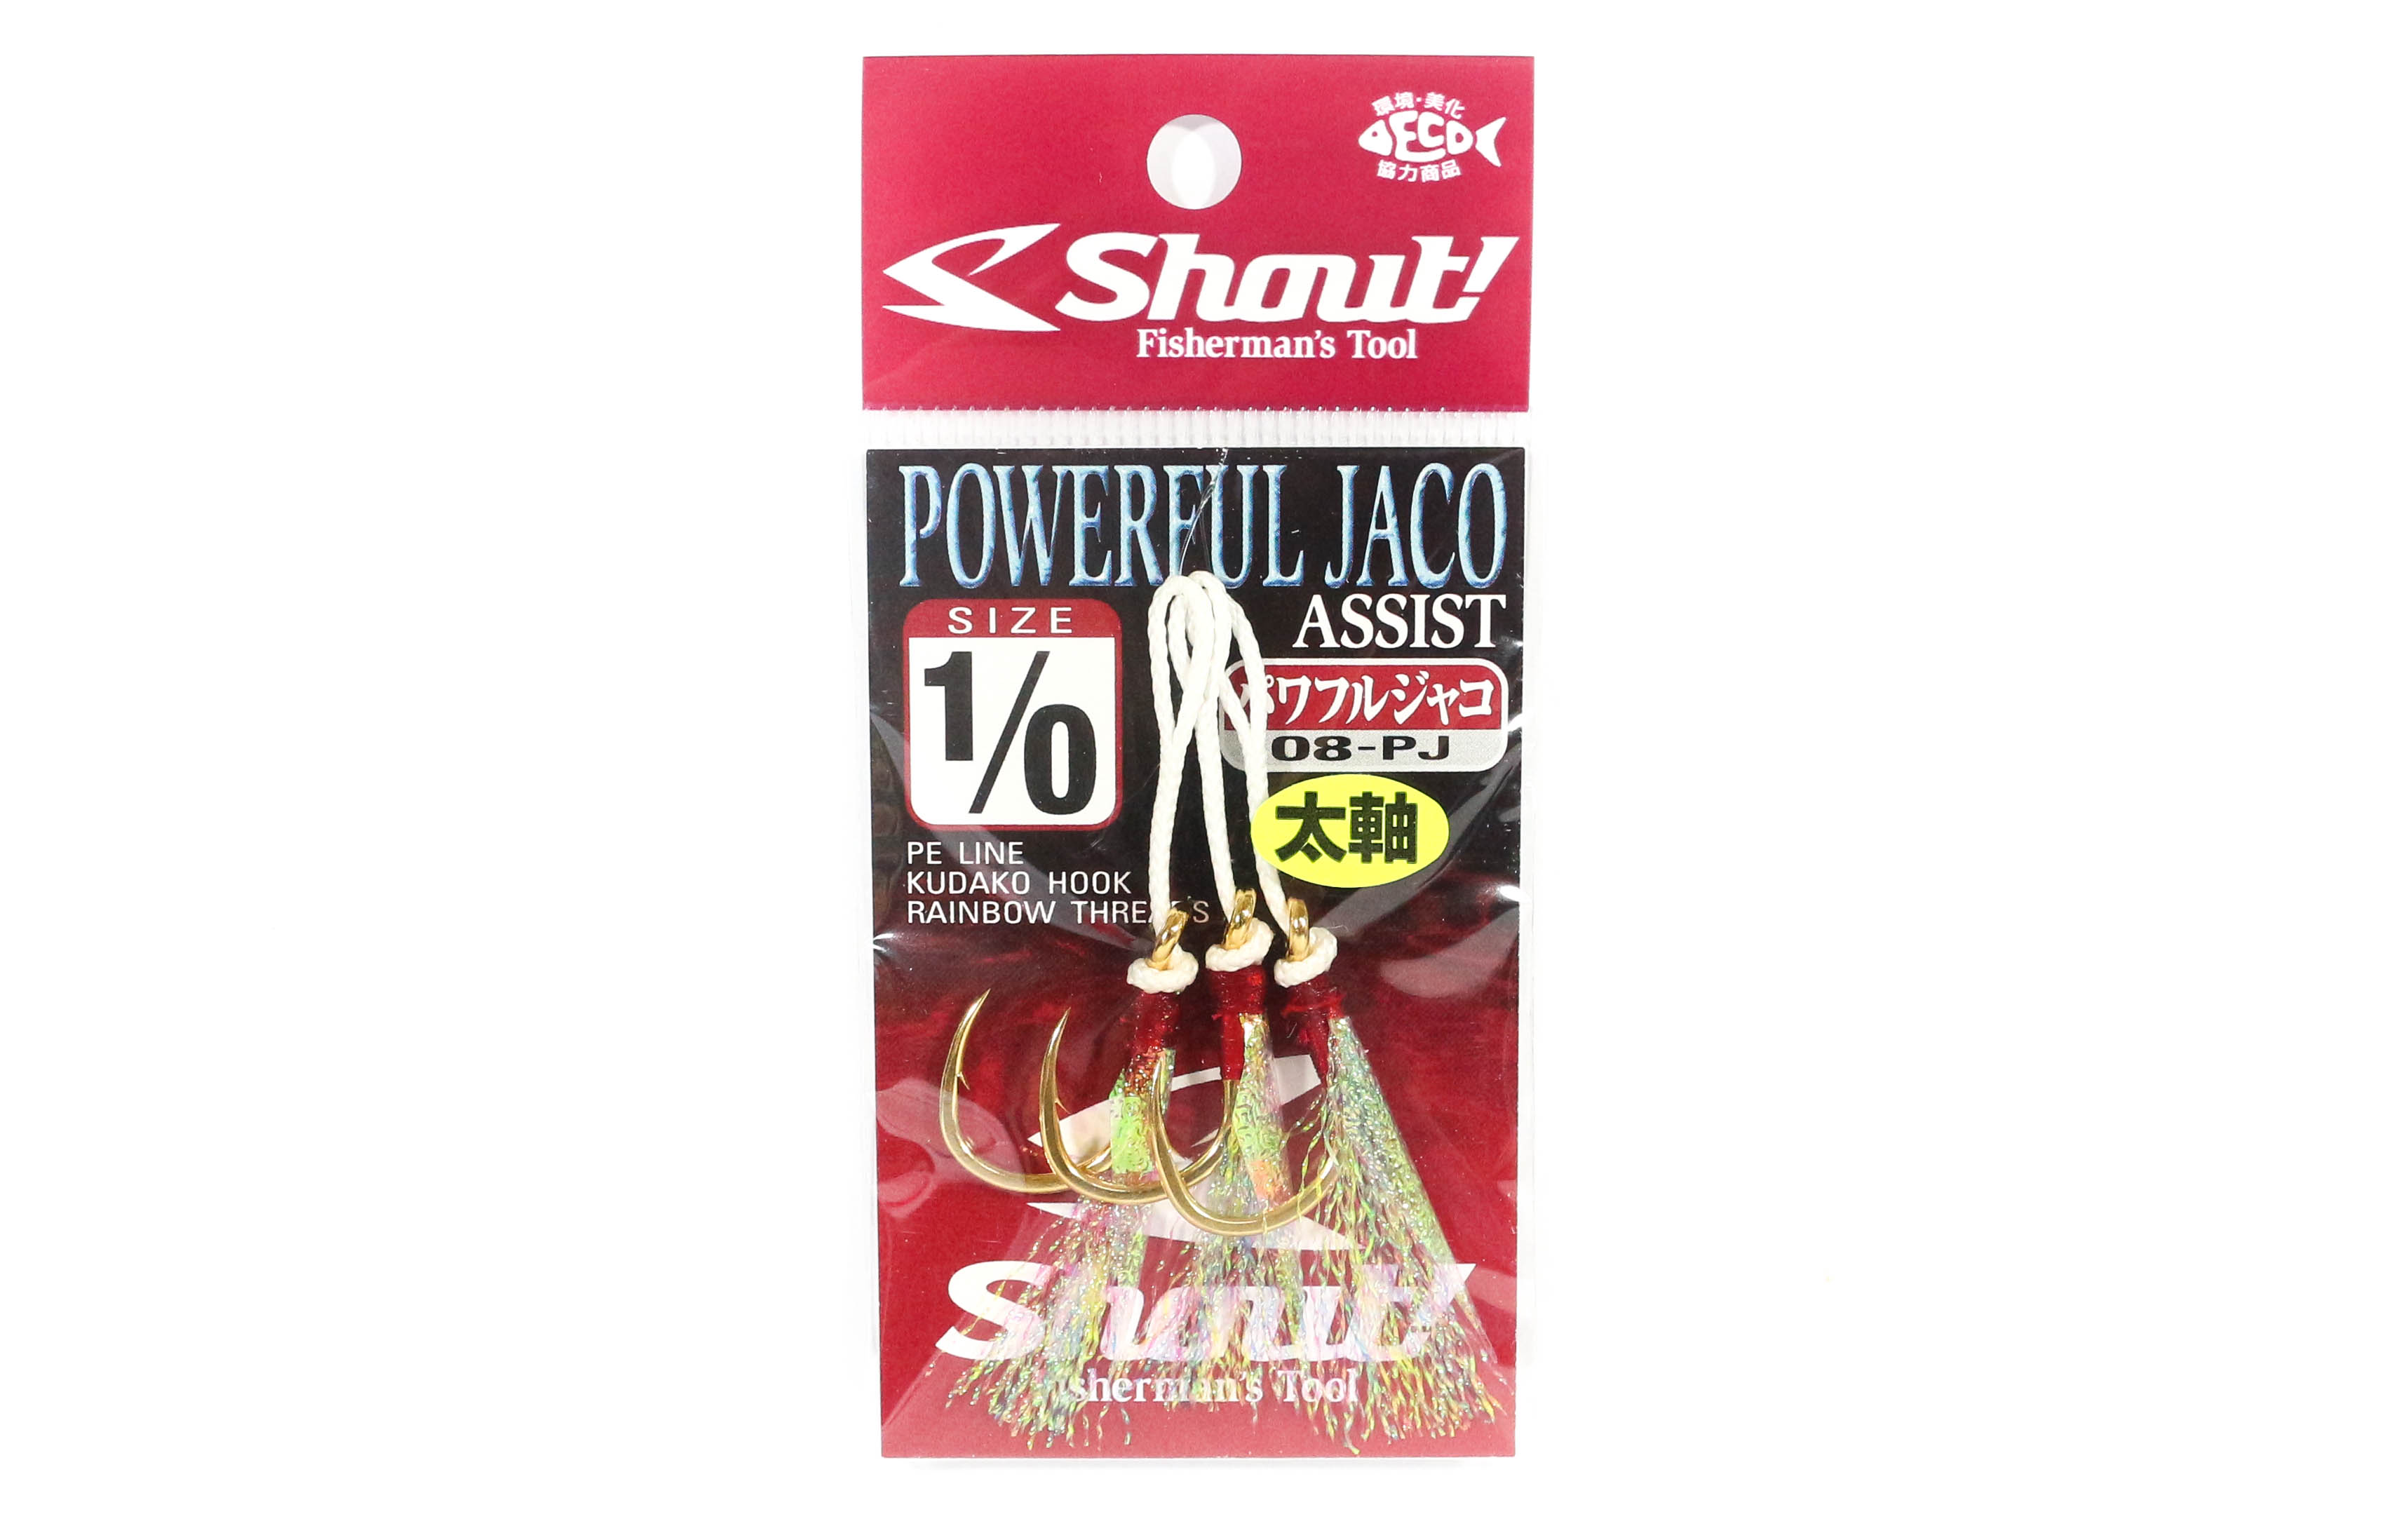 Shout 08-PJ Powerful Jaco Hook Rigged Assist Rainbow Thread Size 1/0 (6102)